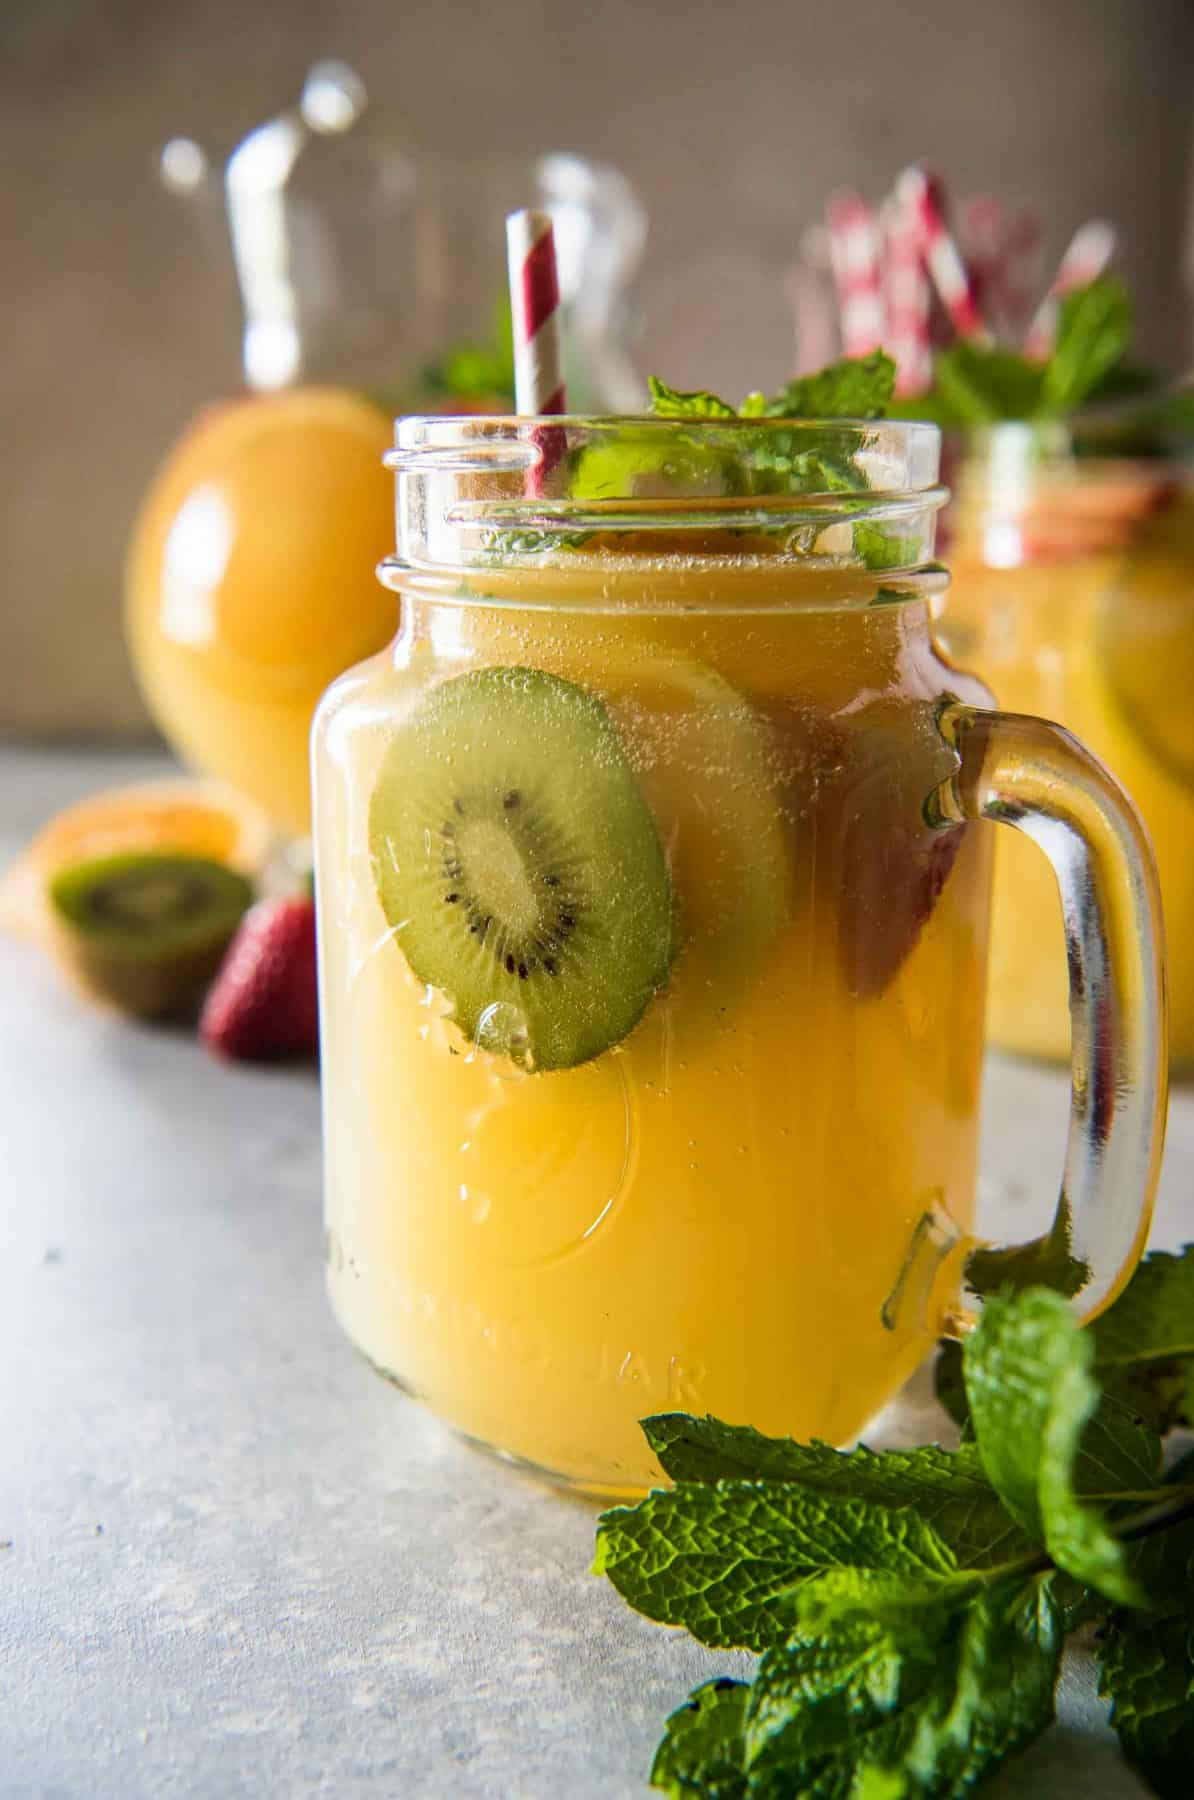 Cool down these hot summer days with a pitcher of Orange Lemonade Twist Punch! Fizzy, spicy, and fruity, this refreshing drink is sure to wow your friends & family!